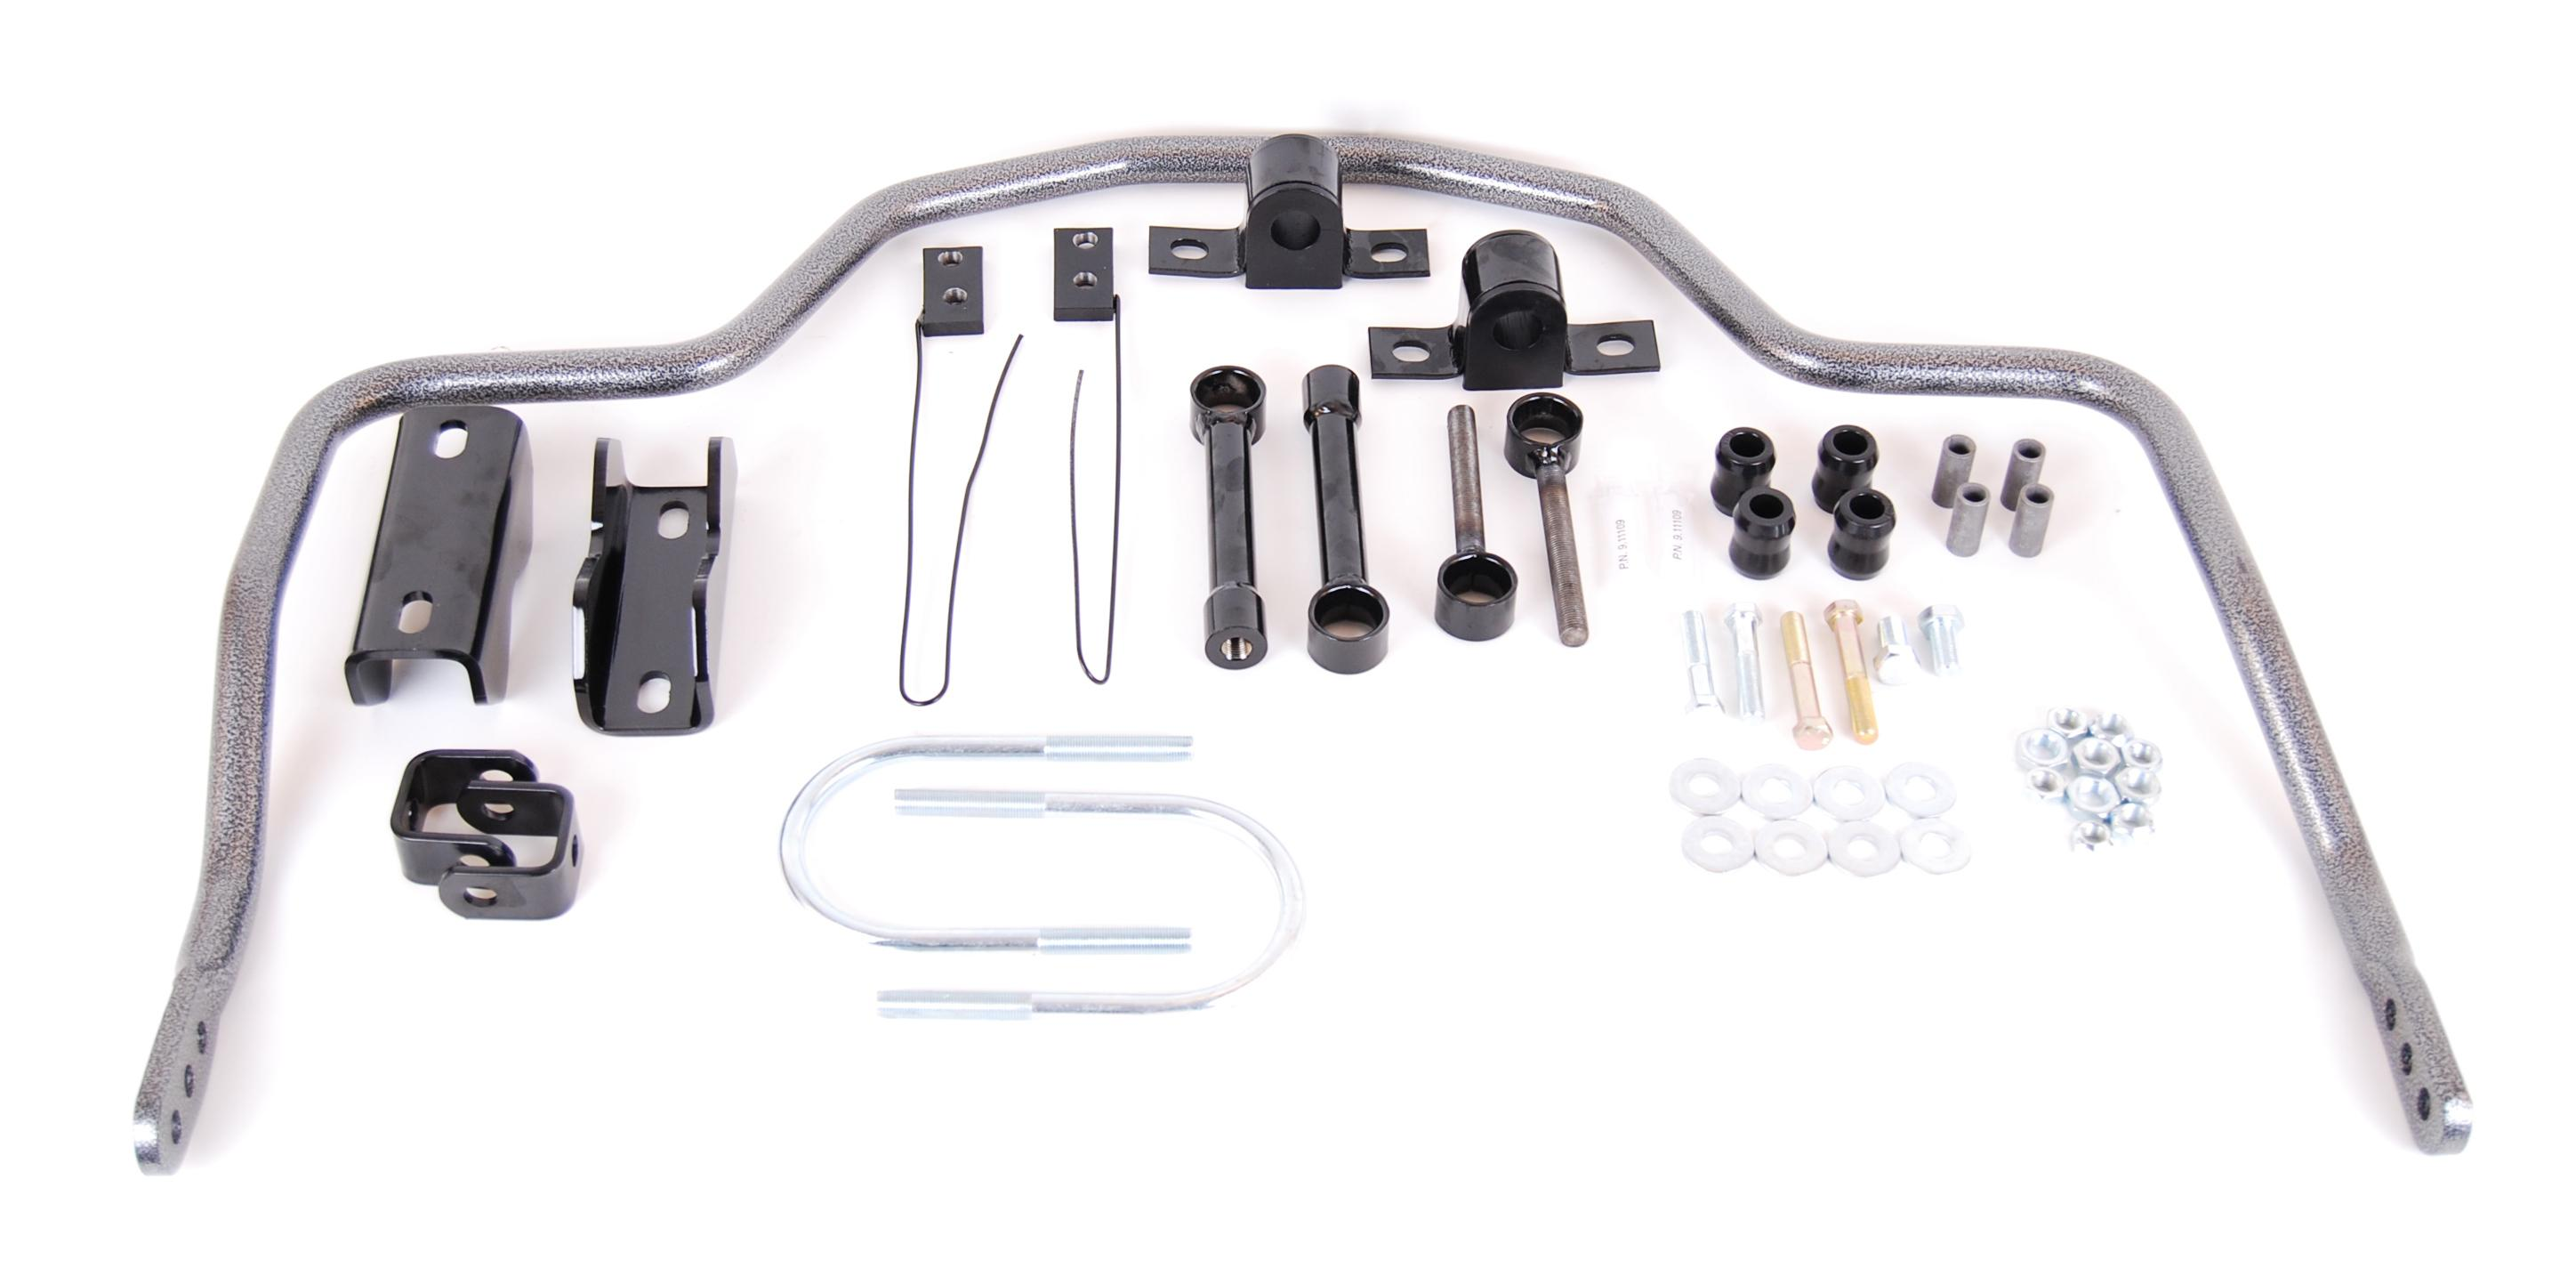 Hellwig 7743 Rear Sway Bar Kit For Ford F150 2wd 4wd Jeep Wrangler Front Diagram Free Image About Wiring Link Acdelco Ac Delco Rough Country